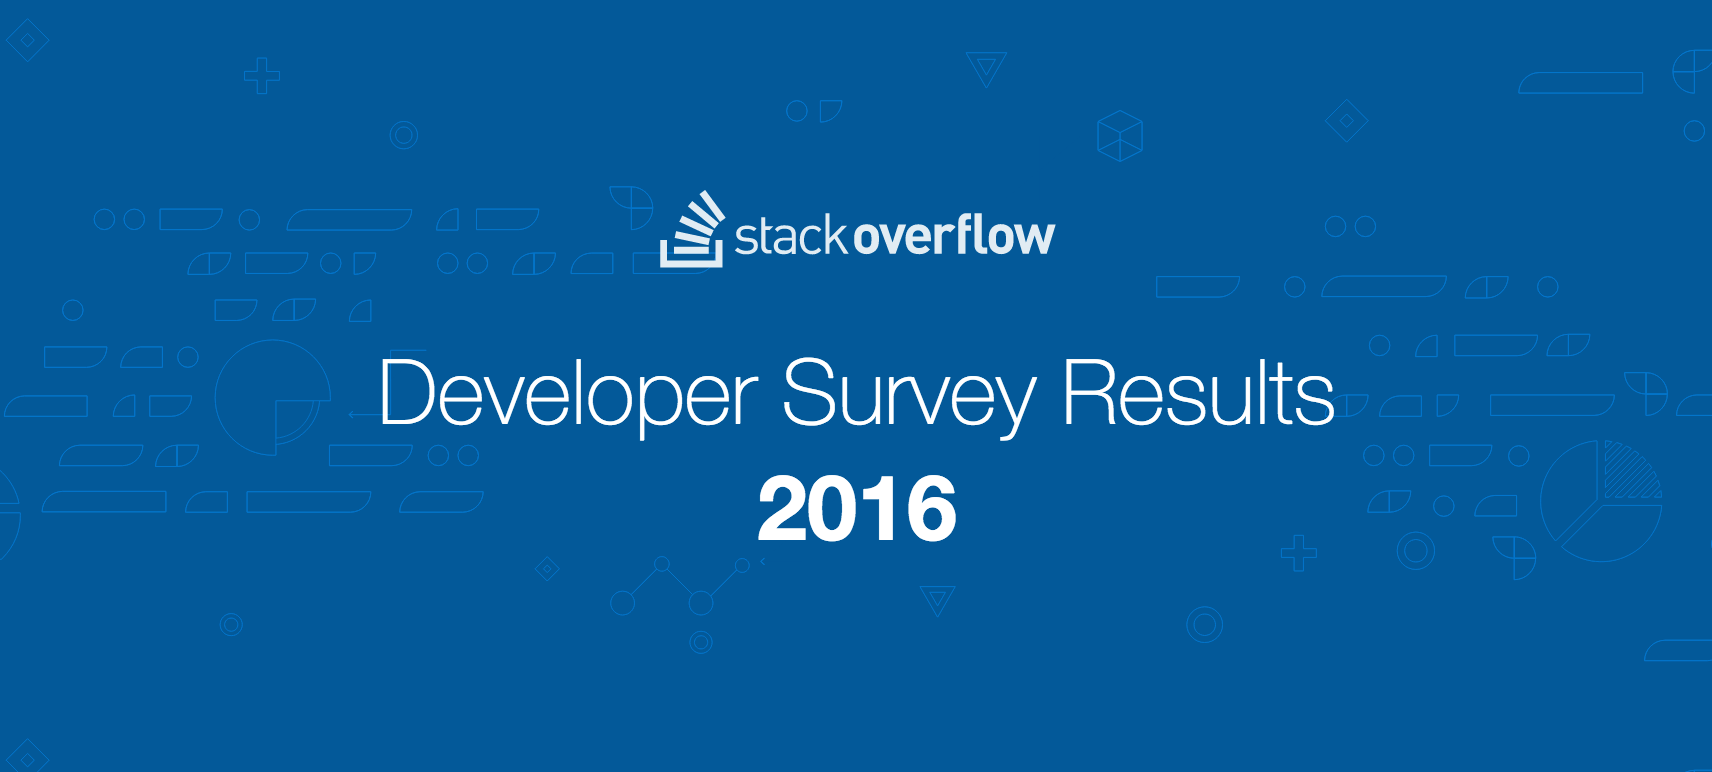 stack-overflow-developer-survey-2016